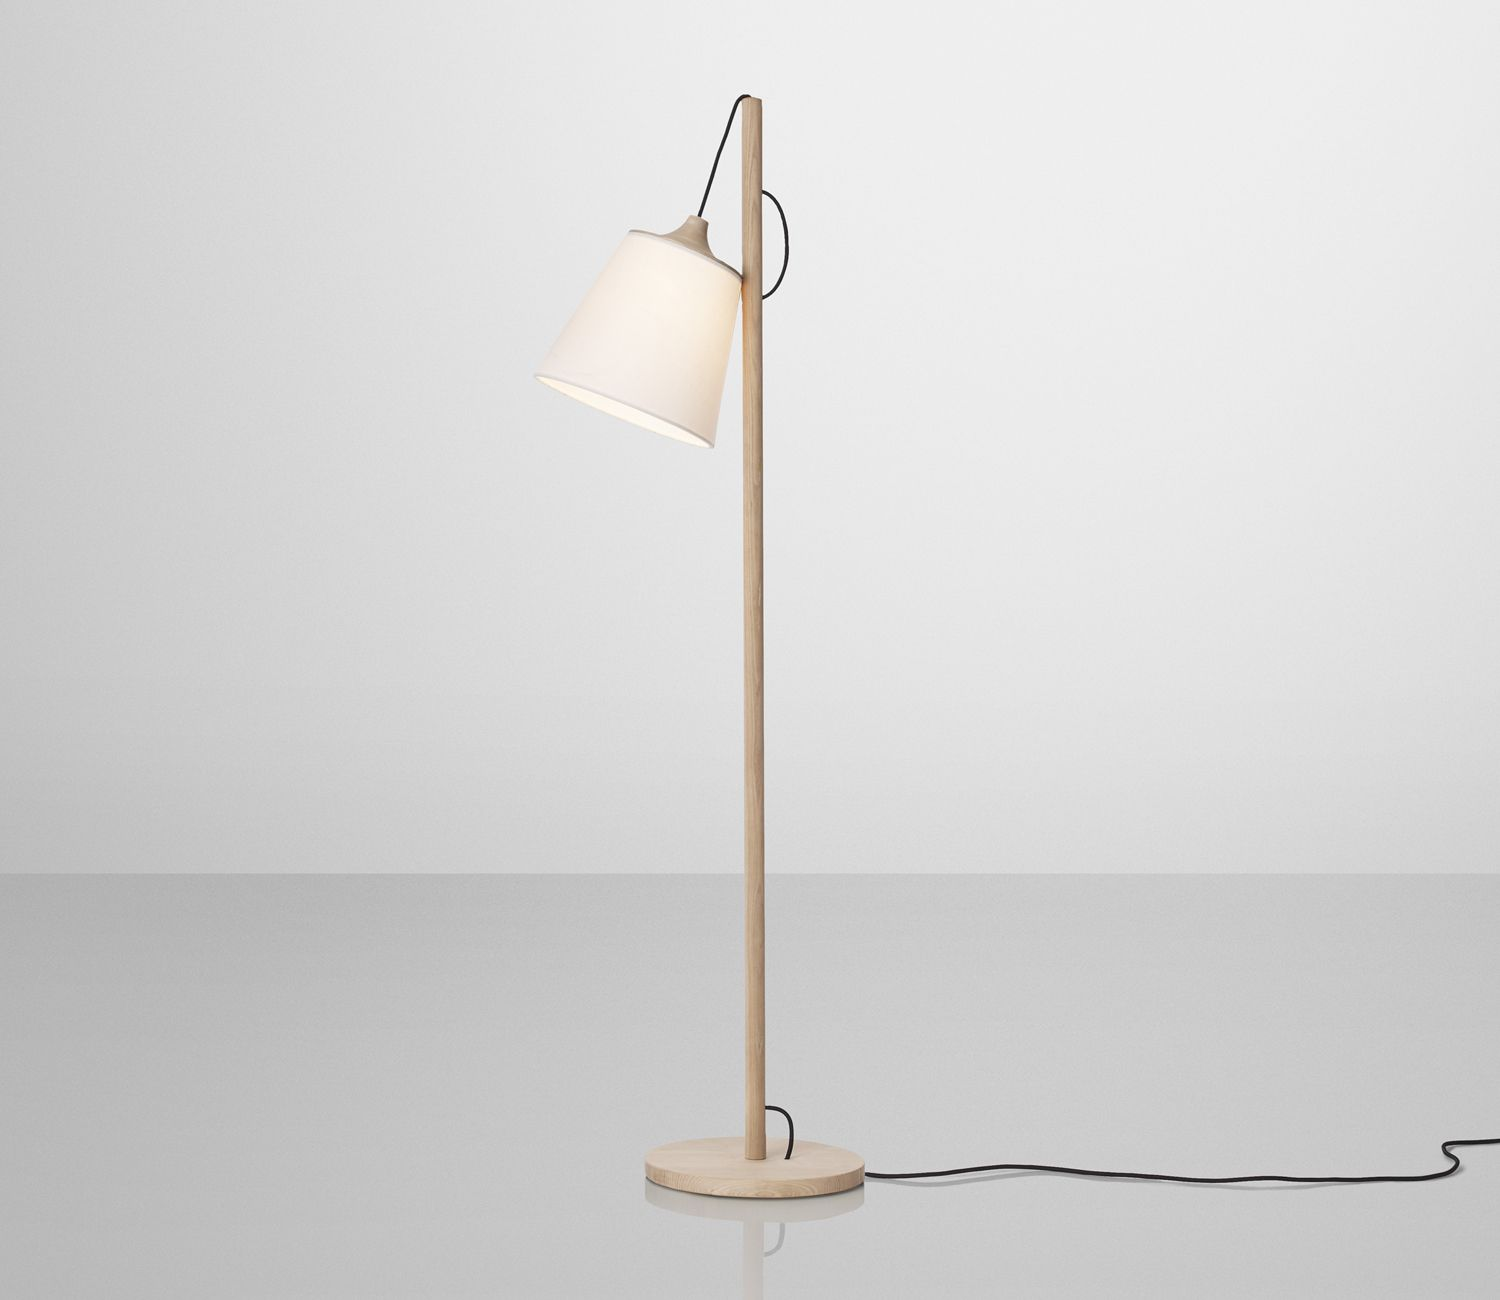 Muuto Pull Lamp with shade in upper position